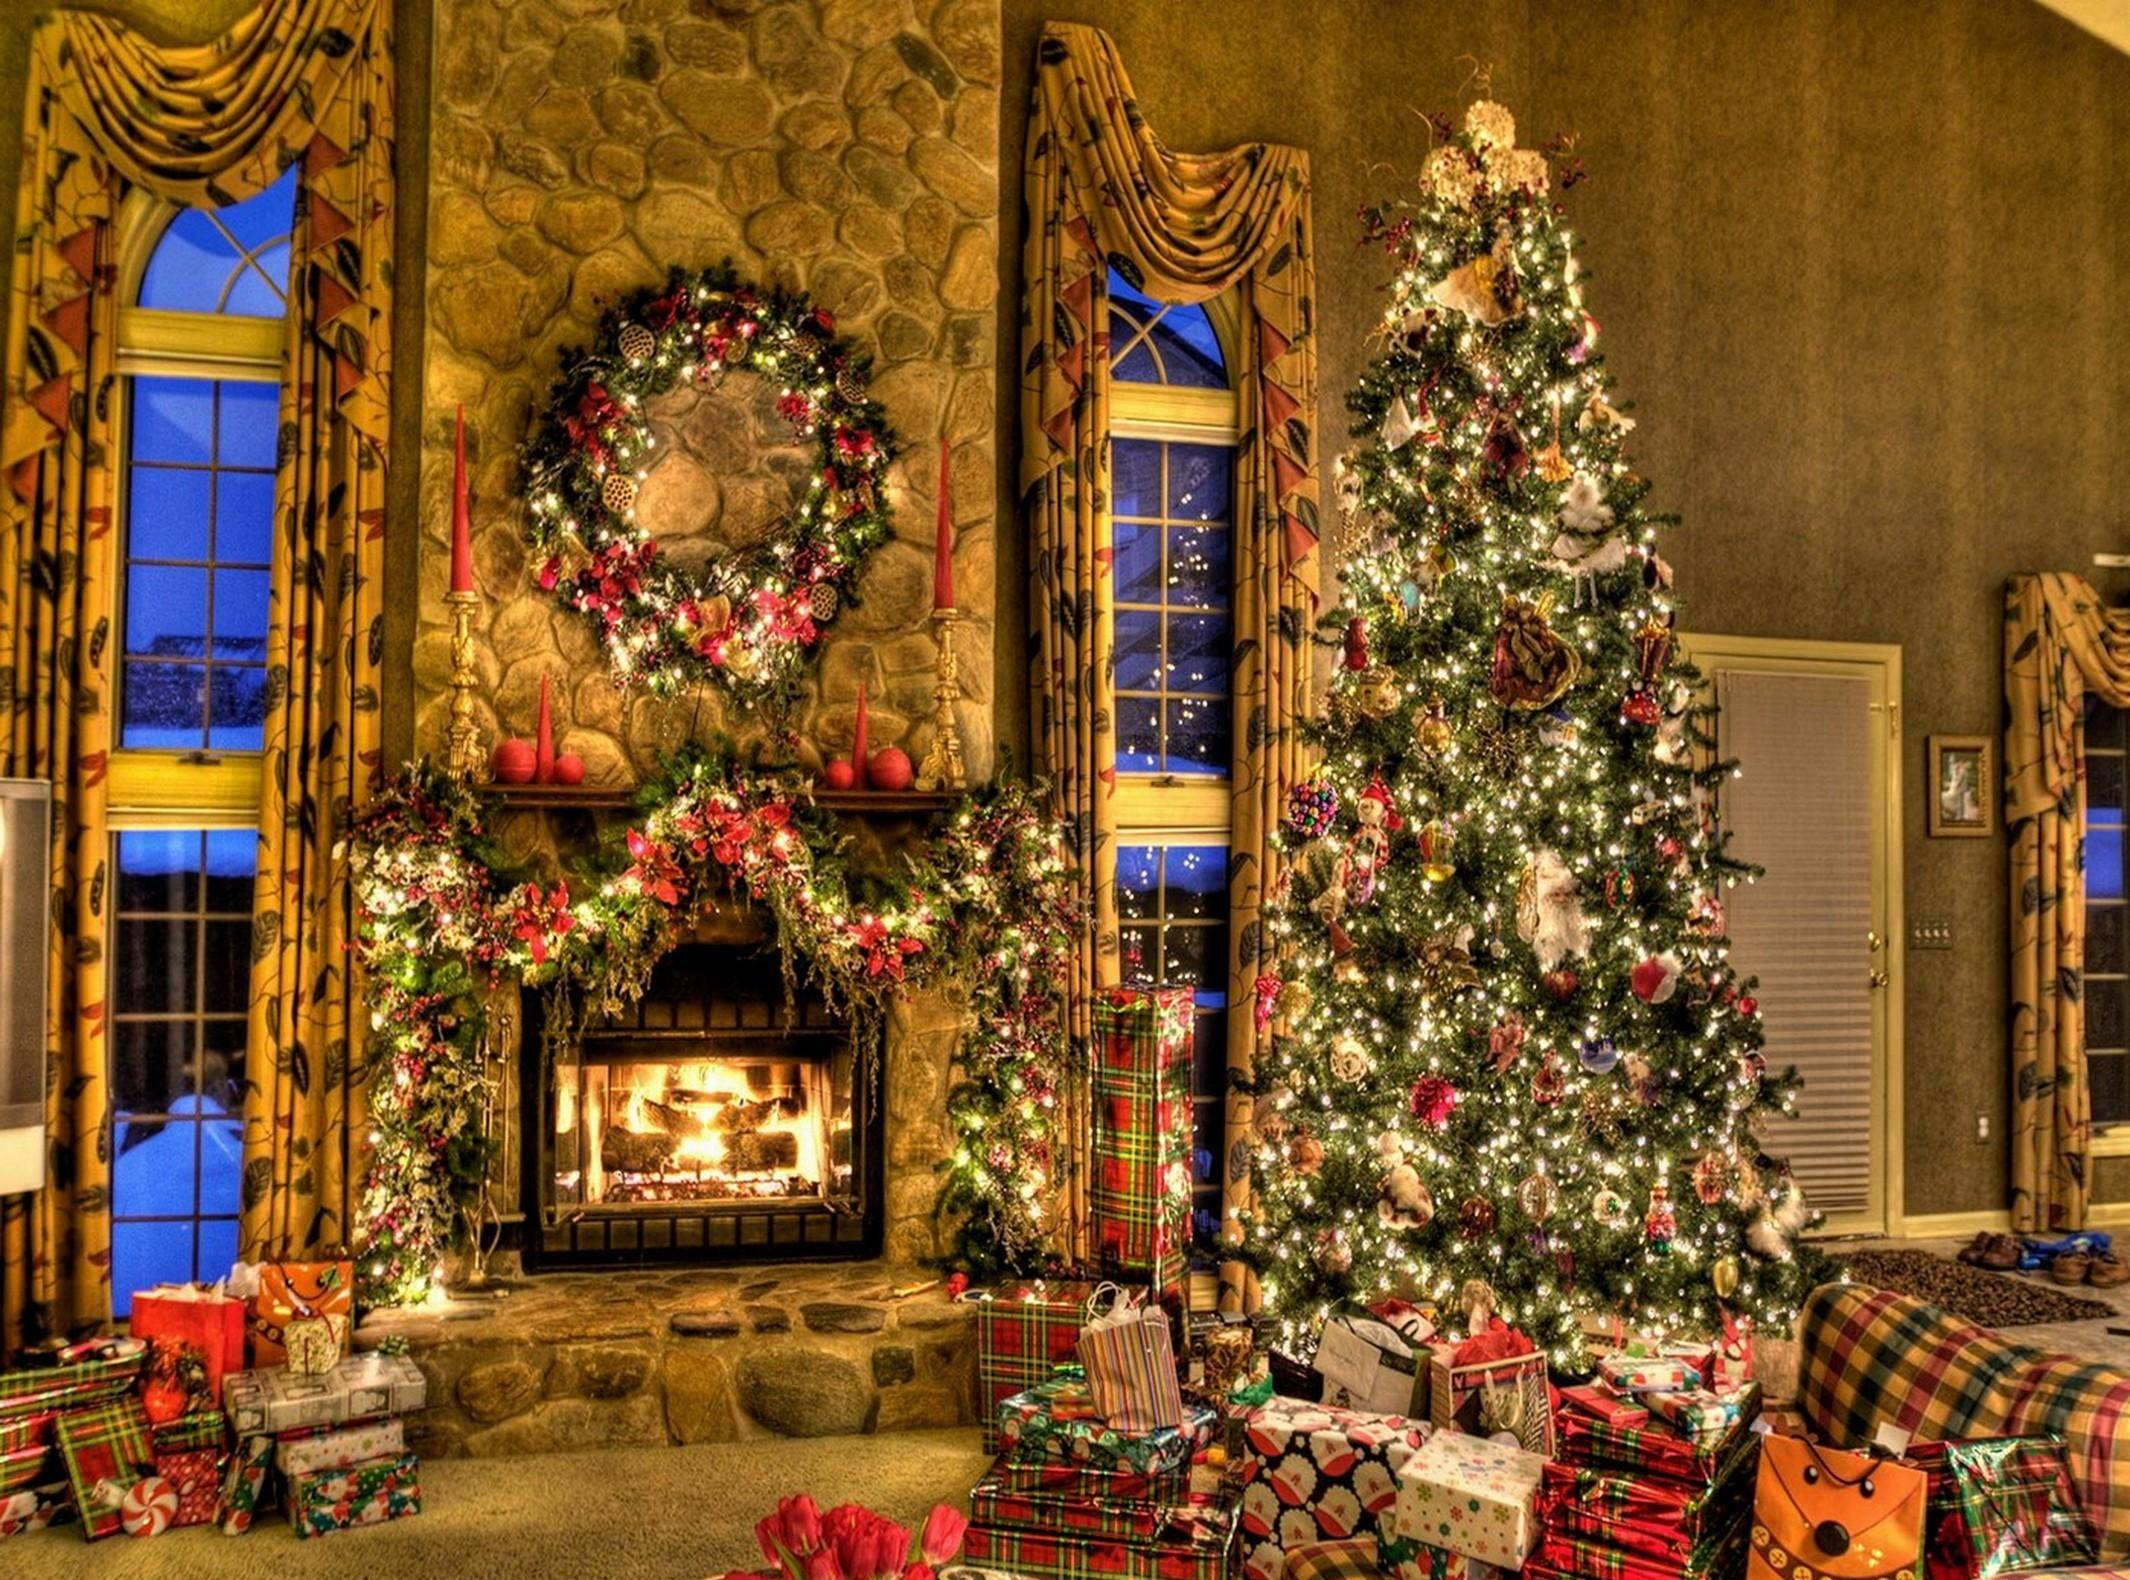 Tree Christmas Presents Fireplace Wreath Home wallpapers #